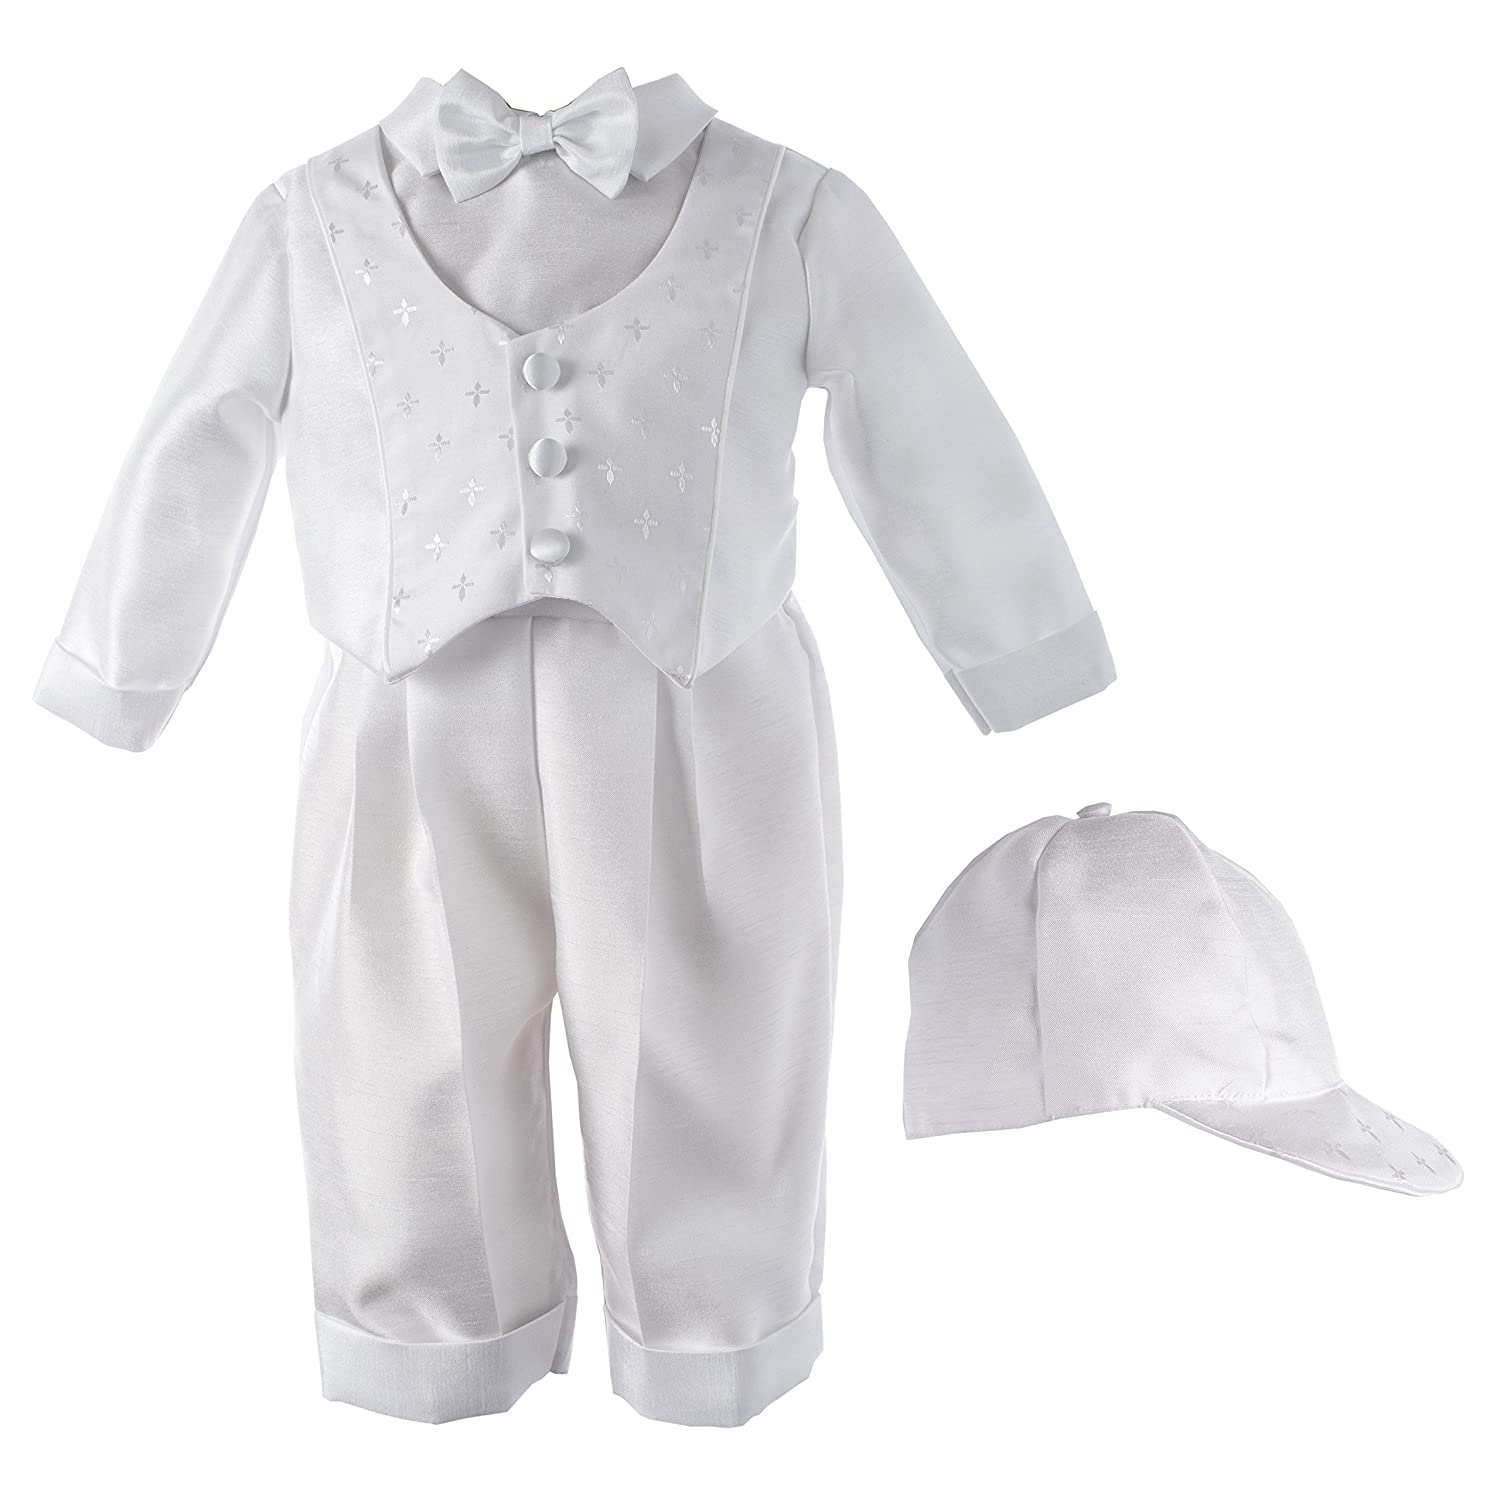 Haddad Brothers Baby-Boys Newborn Christening Baptism Long Pants with Vest Lauren Madison Baby 1517